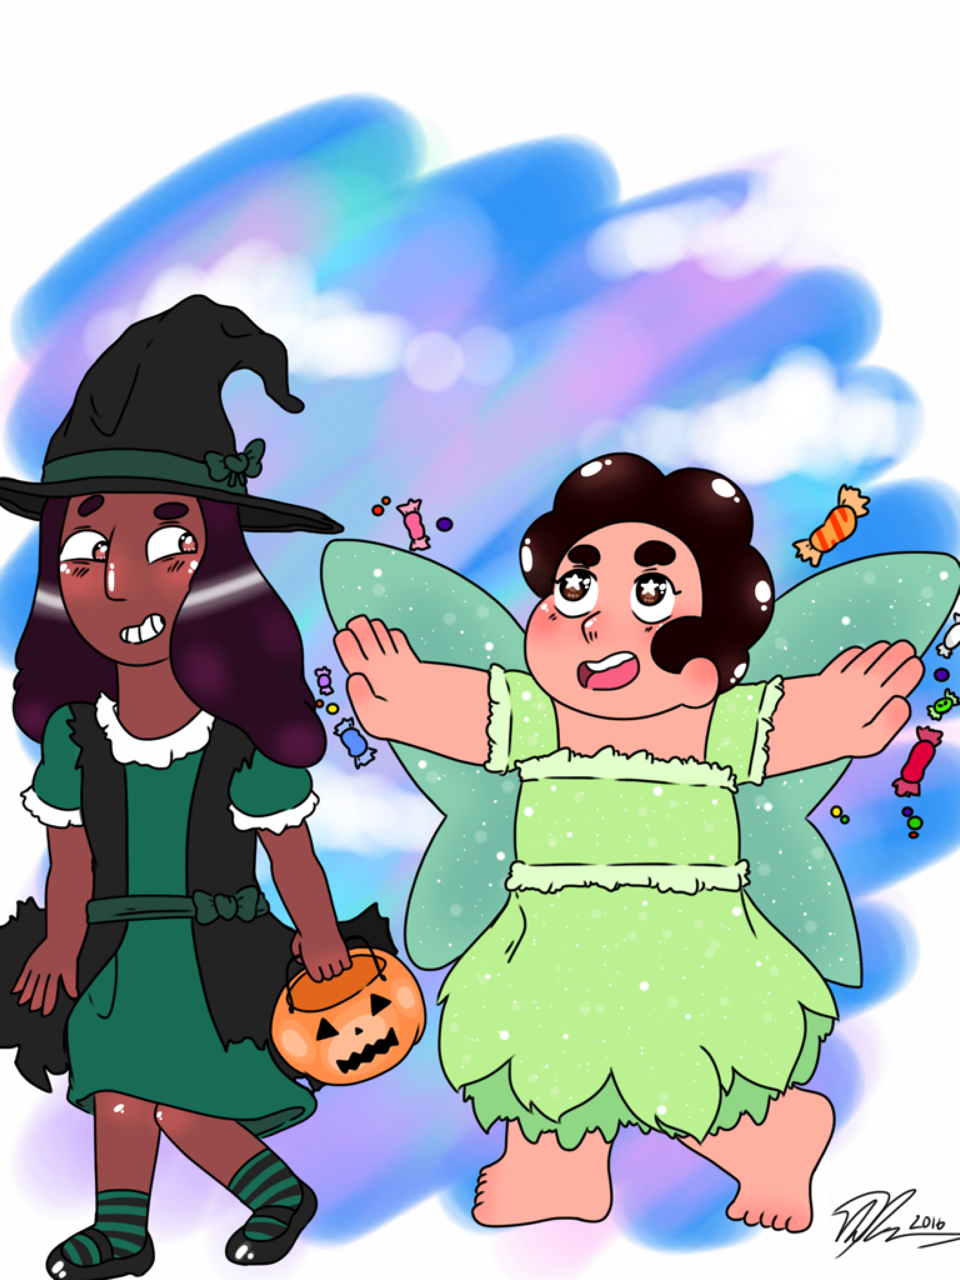 The cinnamon rolls go Trick-or-treating 💖 ( @stevenquartz Please enjoy these pure children spending time together )